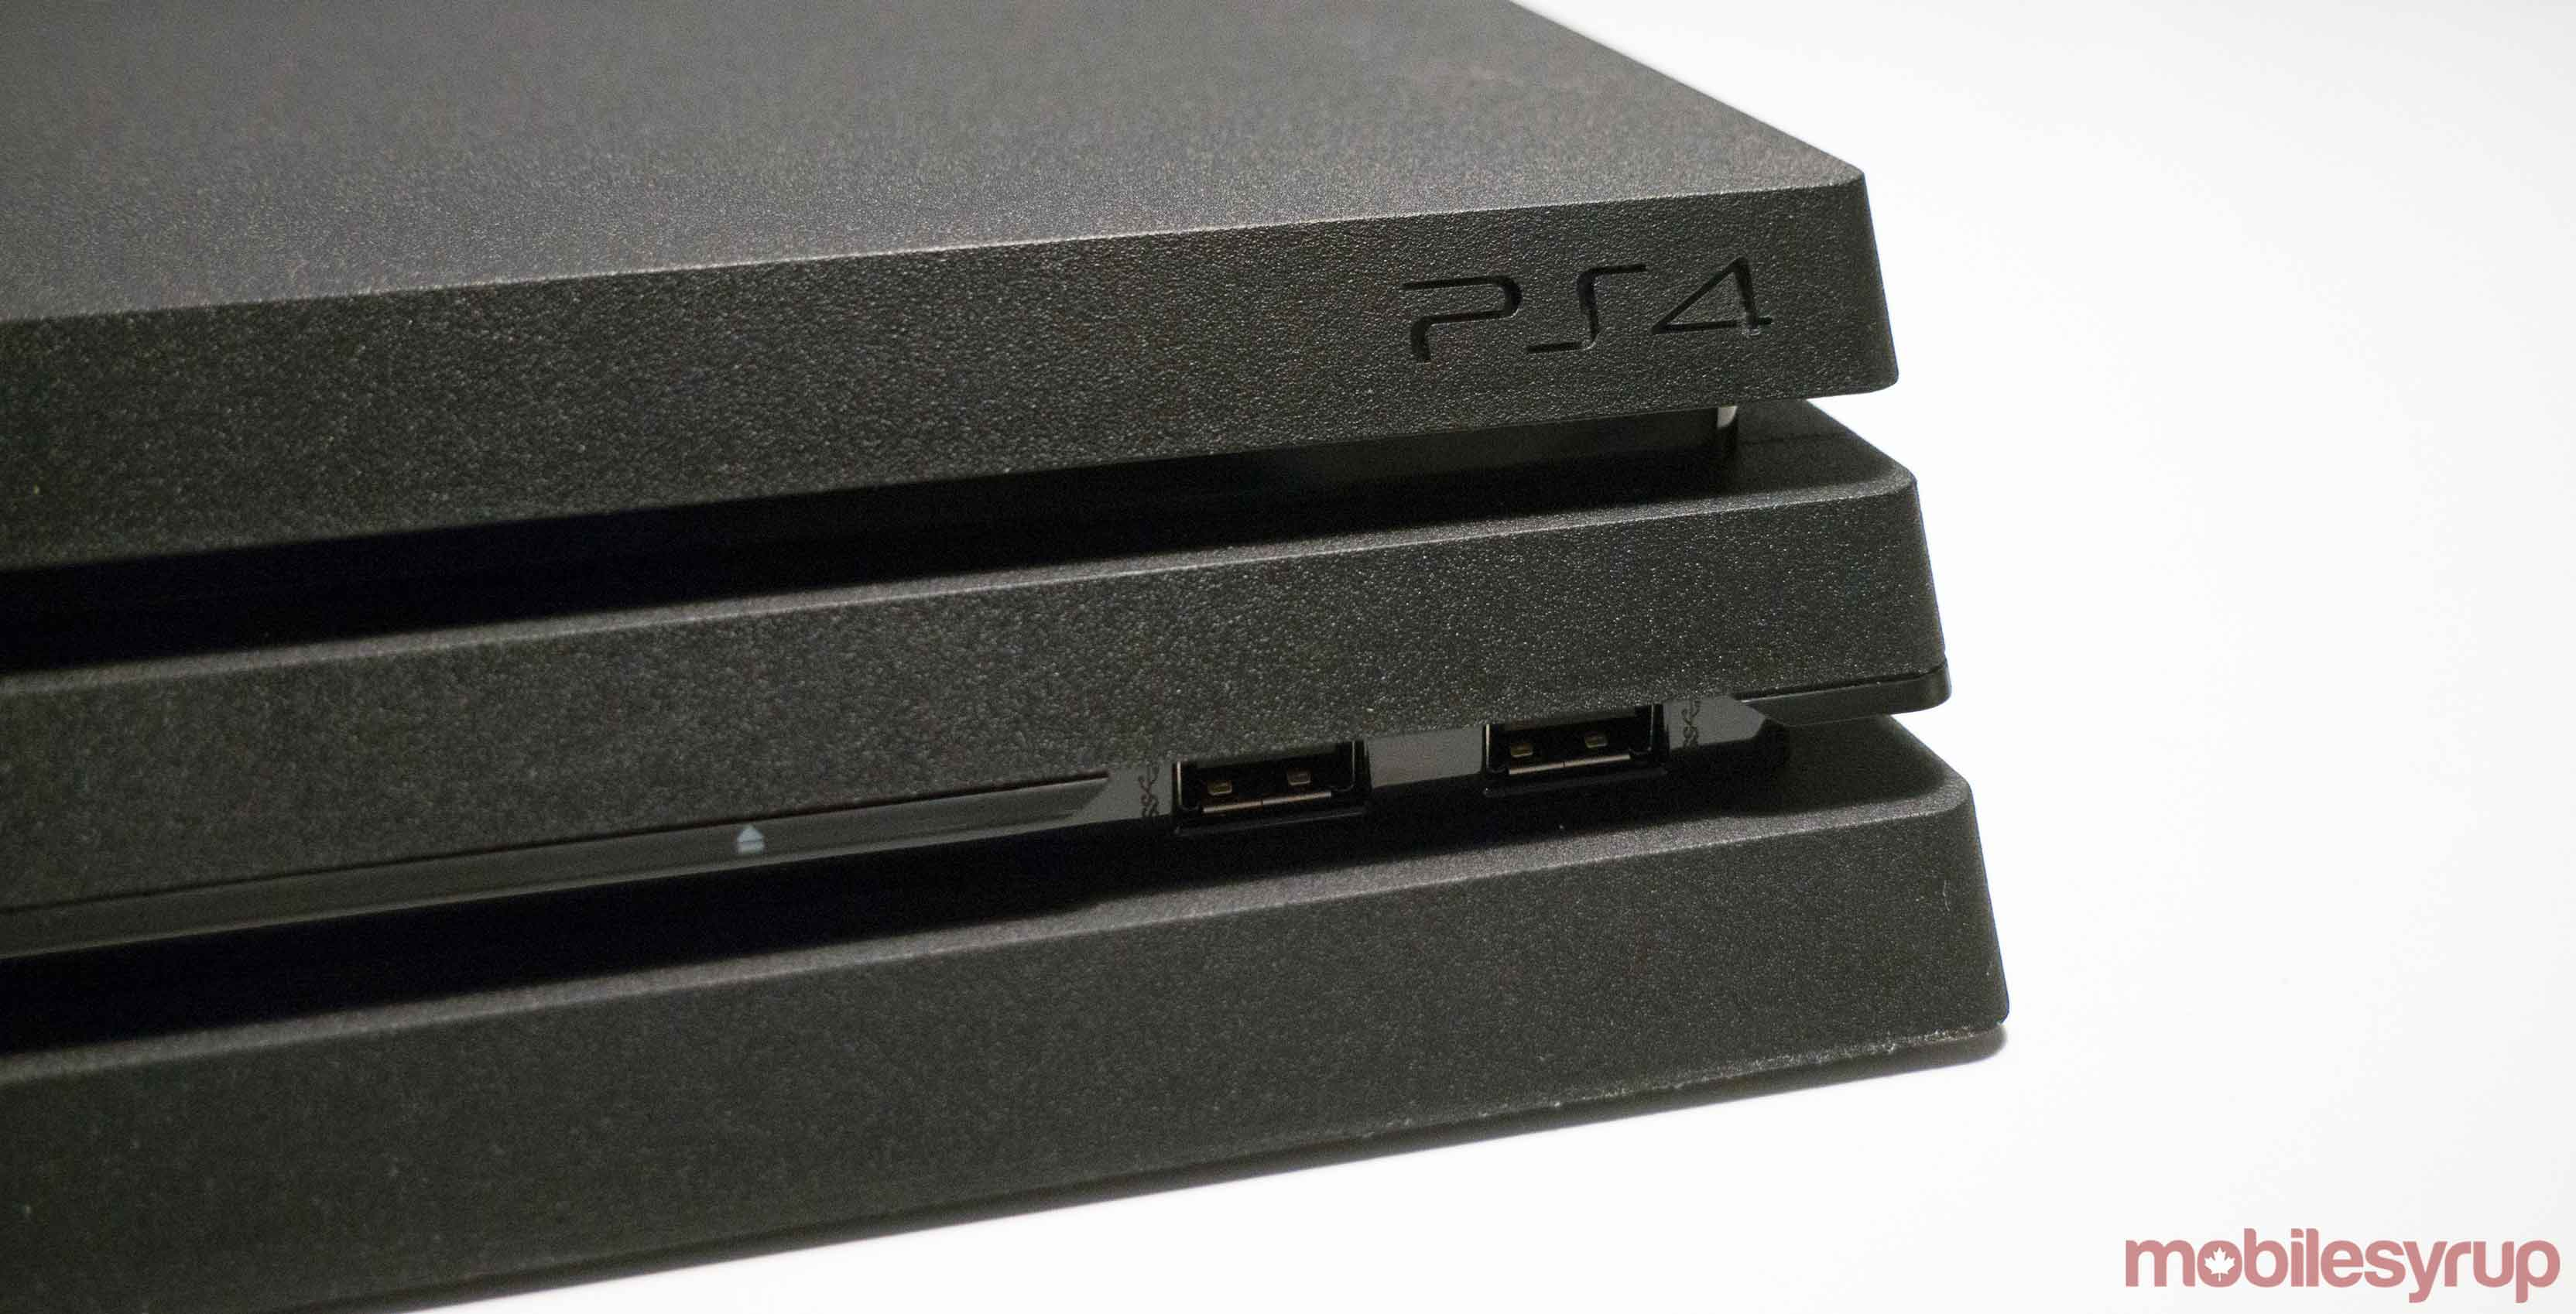 Don't expect Sony to announce the PS5 any time soon